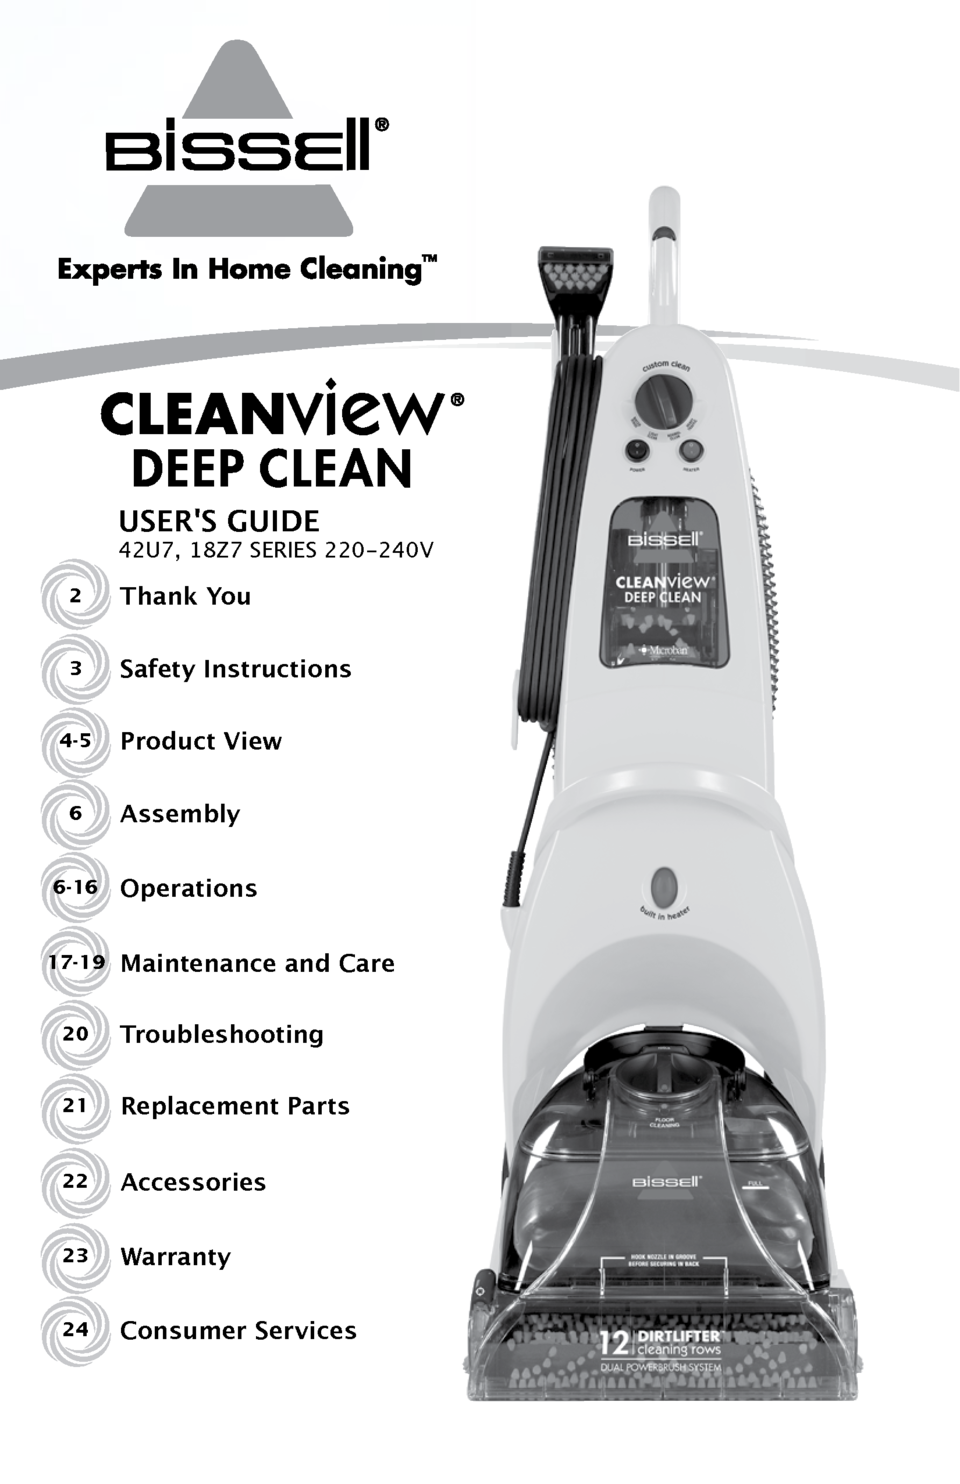 Bisell Cleanview Deep Clean Carpet Cleaner 18z7e User Manual Bissell Sweeper Diagram And Parts List For Carpetfloor Page 1 2thank You Users Guide 42u7 18z7 Series 220 240v Safety Instructions Product